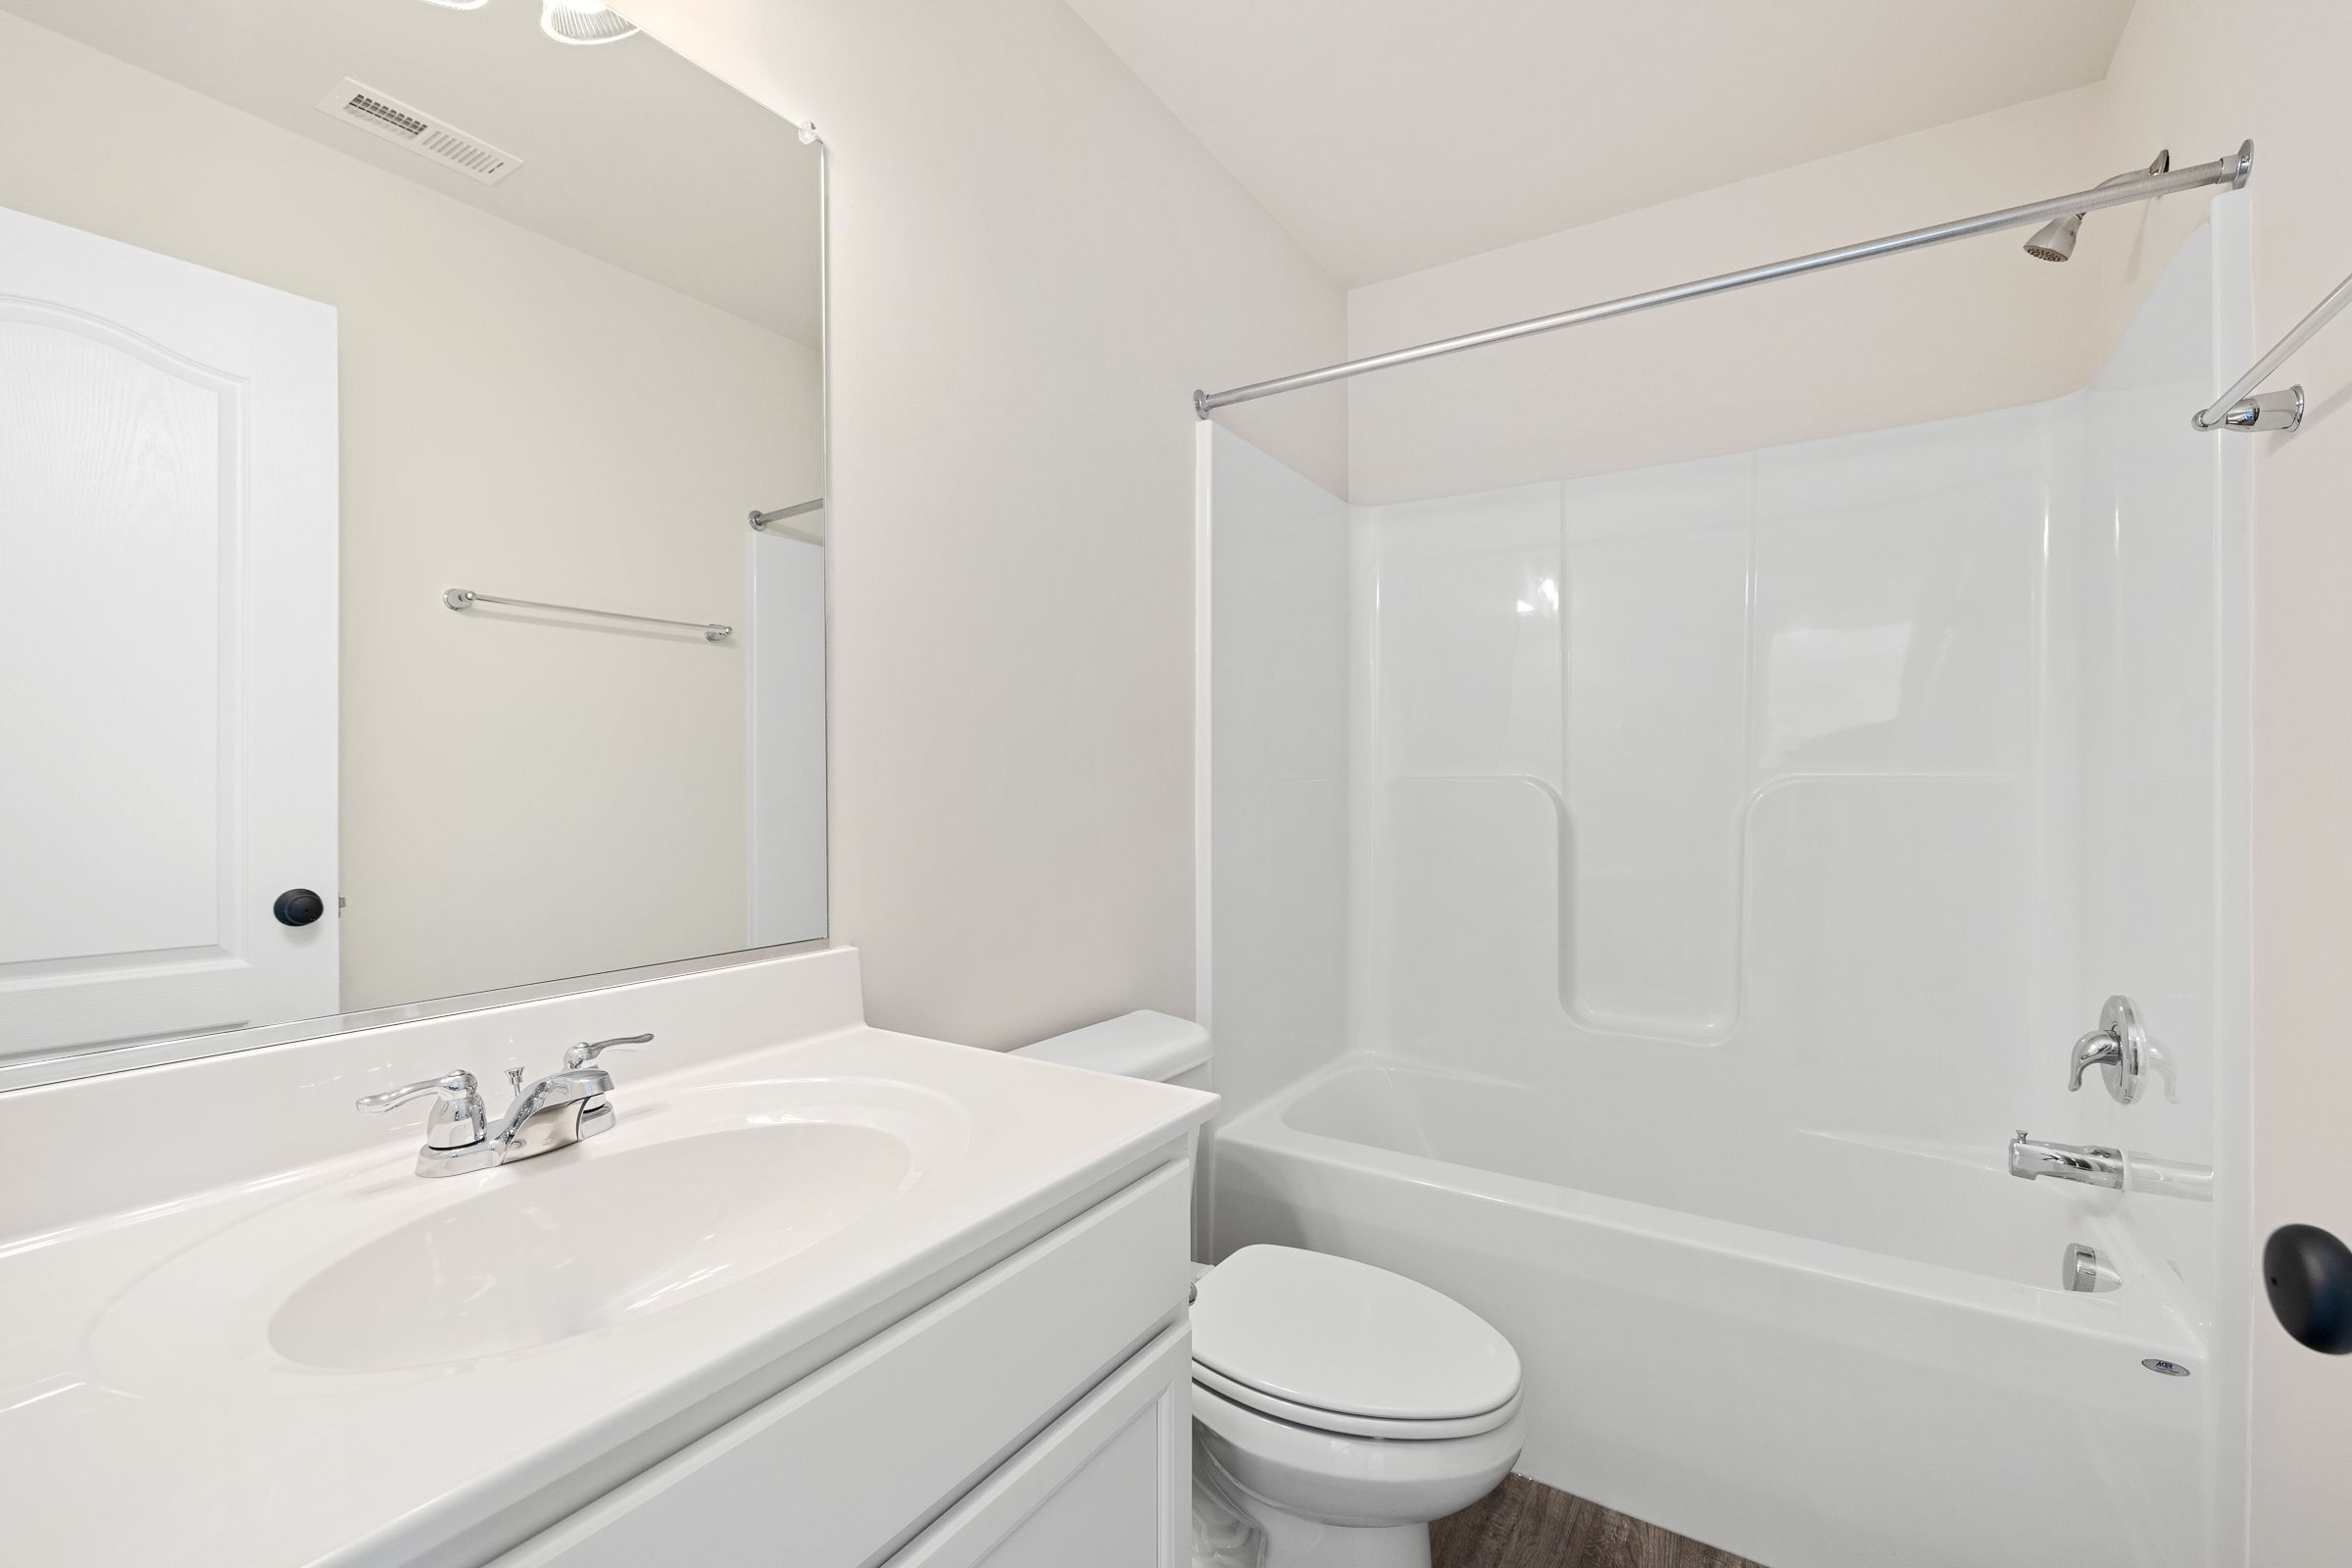 Bathroom featured in The Hawthorn By Tricord Homes in Washington, VA